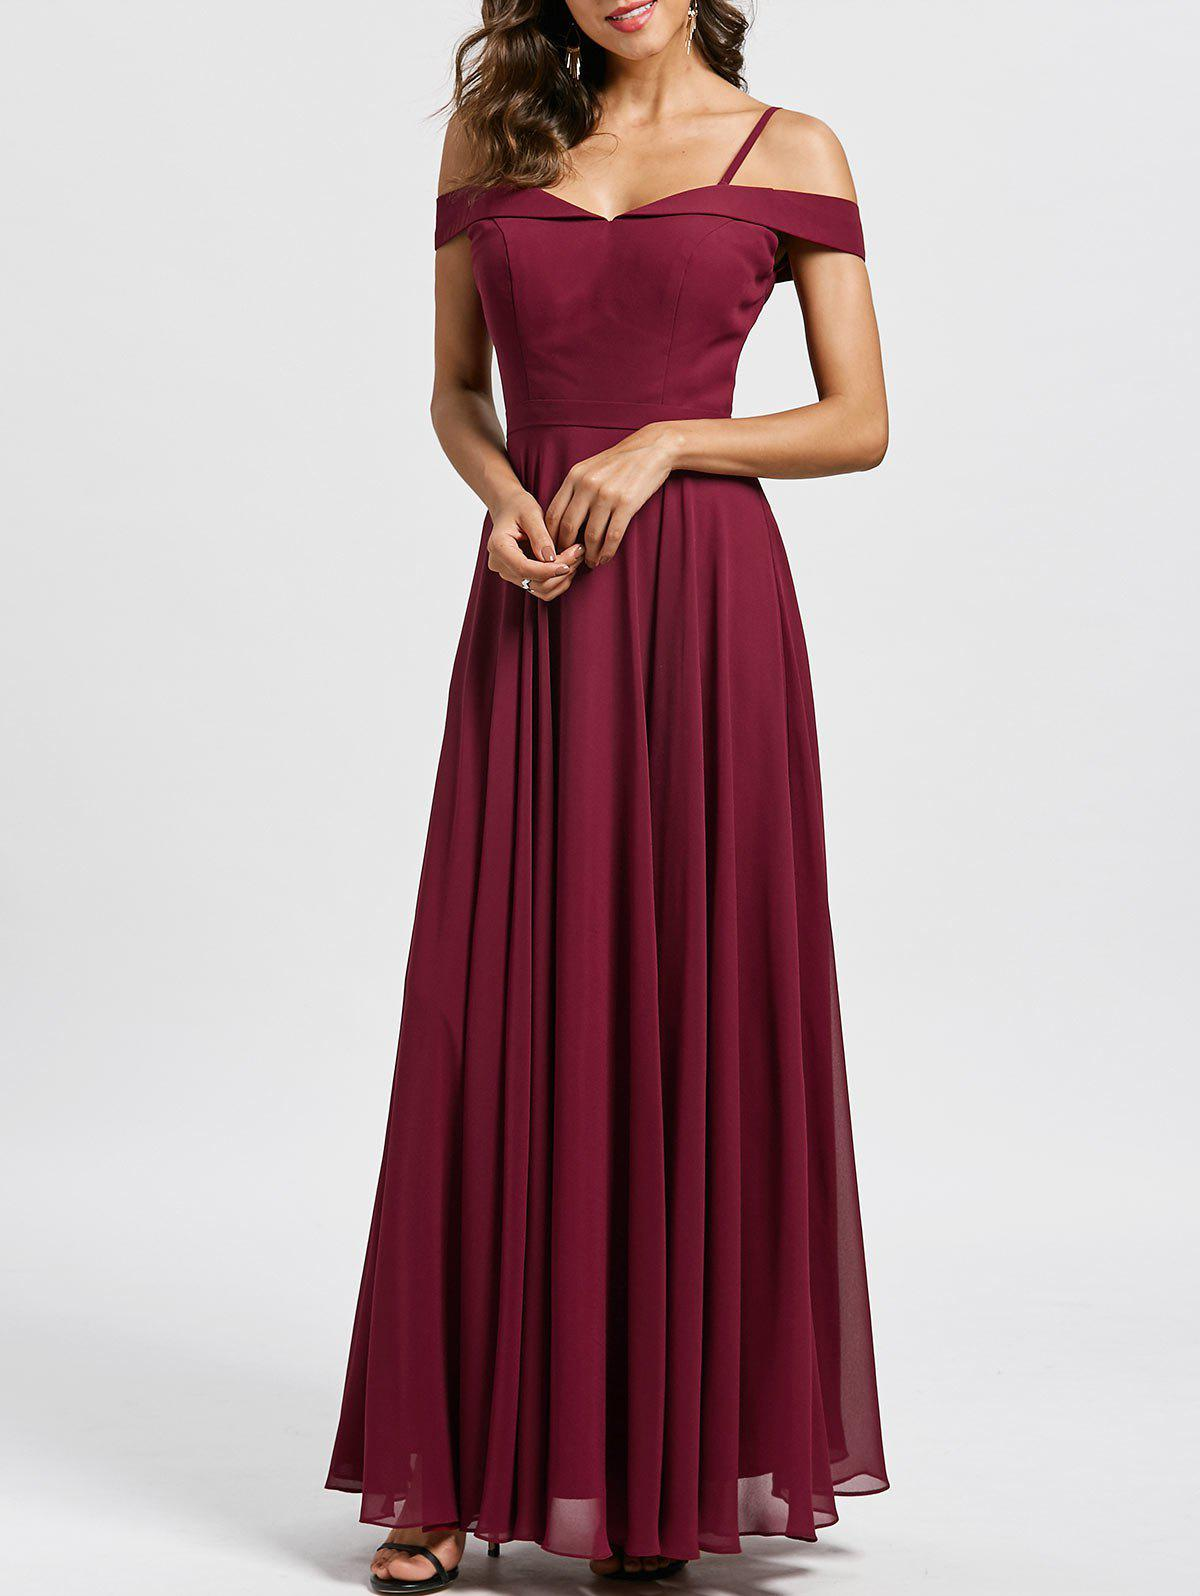 Spaghetti Strap Cold Shoulder Maxi Evening Dress - WINE RED 2XL